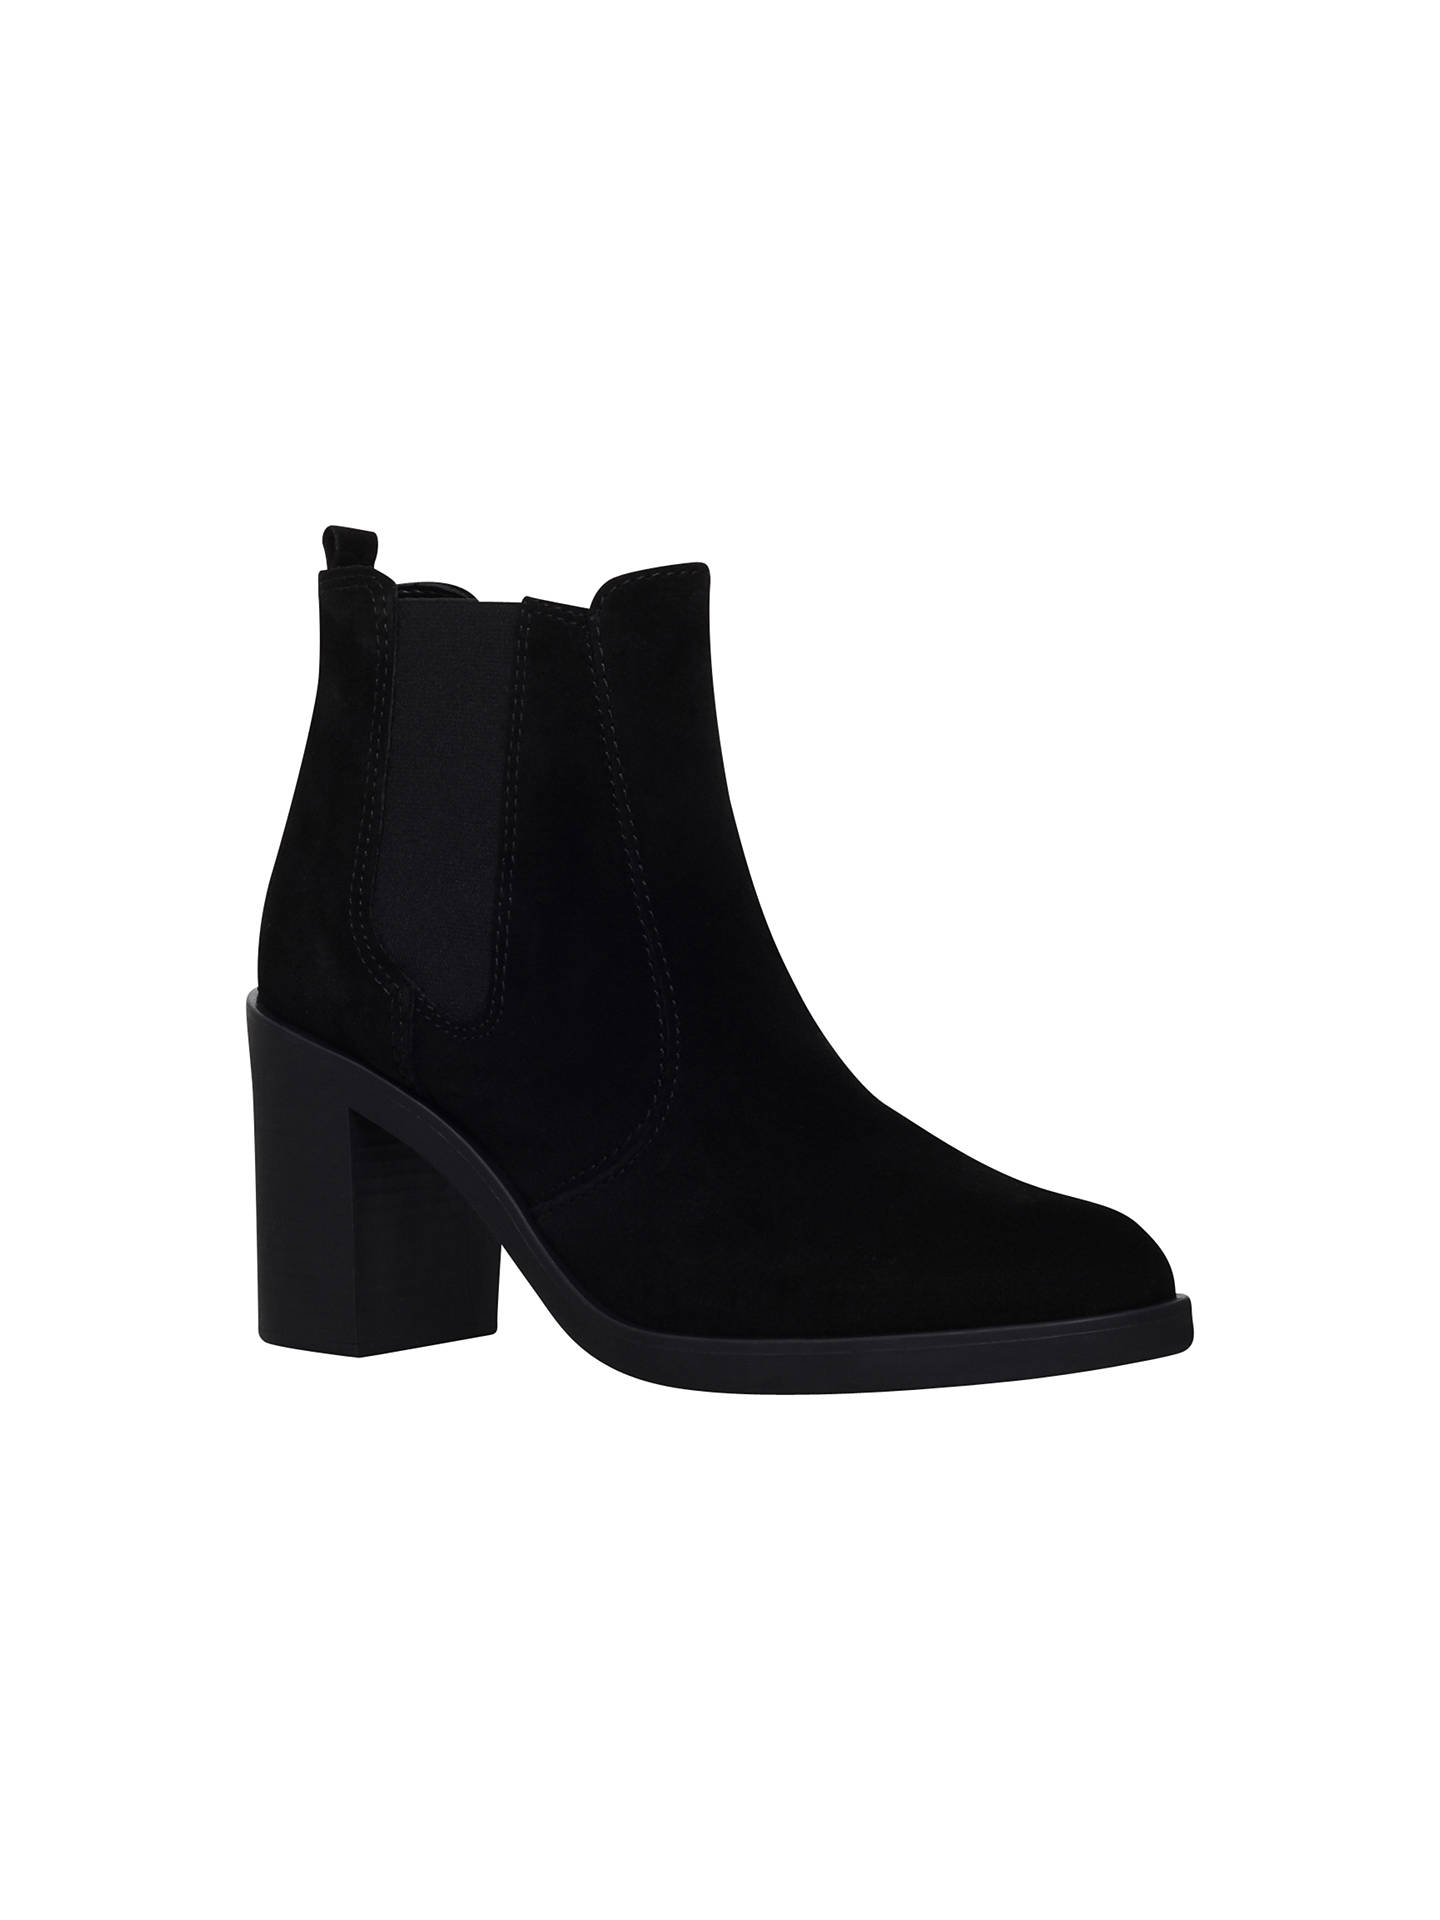 Buy KG Kurt Geiger Sicily High Heel Ankle Boots, Black Suede, 3 Online at johnlewis.com